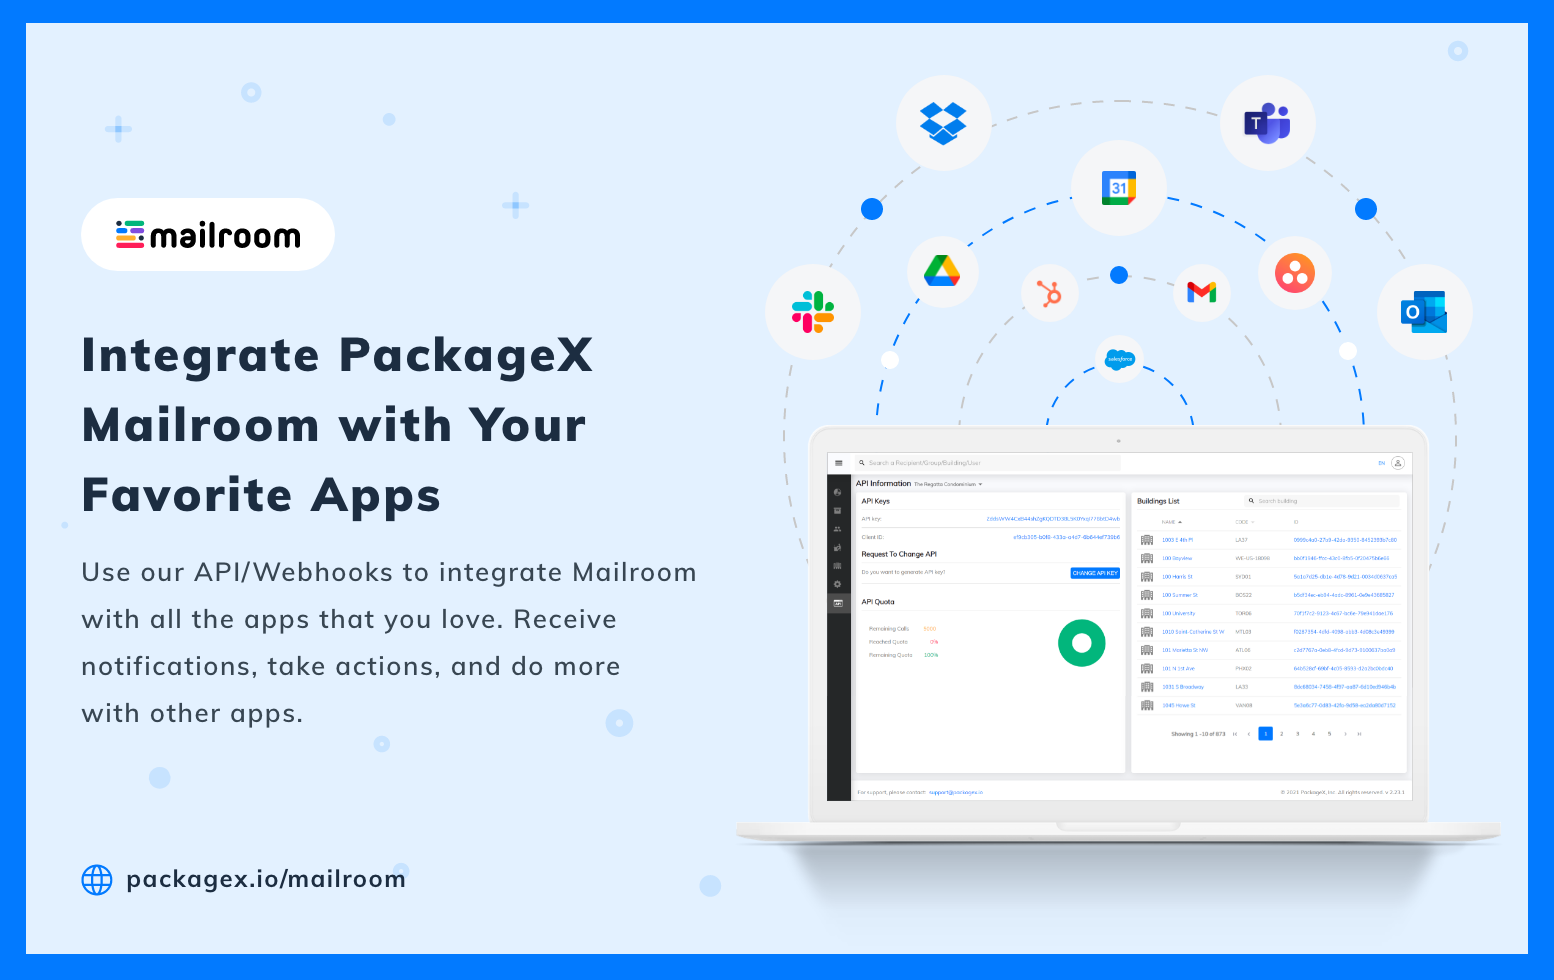 Integrate PackageX Mailroom with your favorite apps using our API.